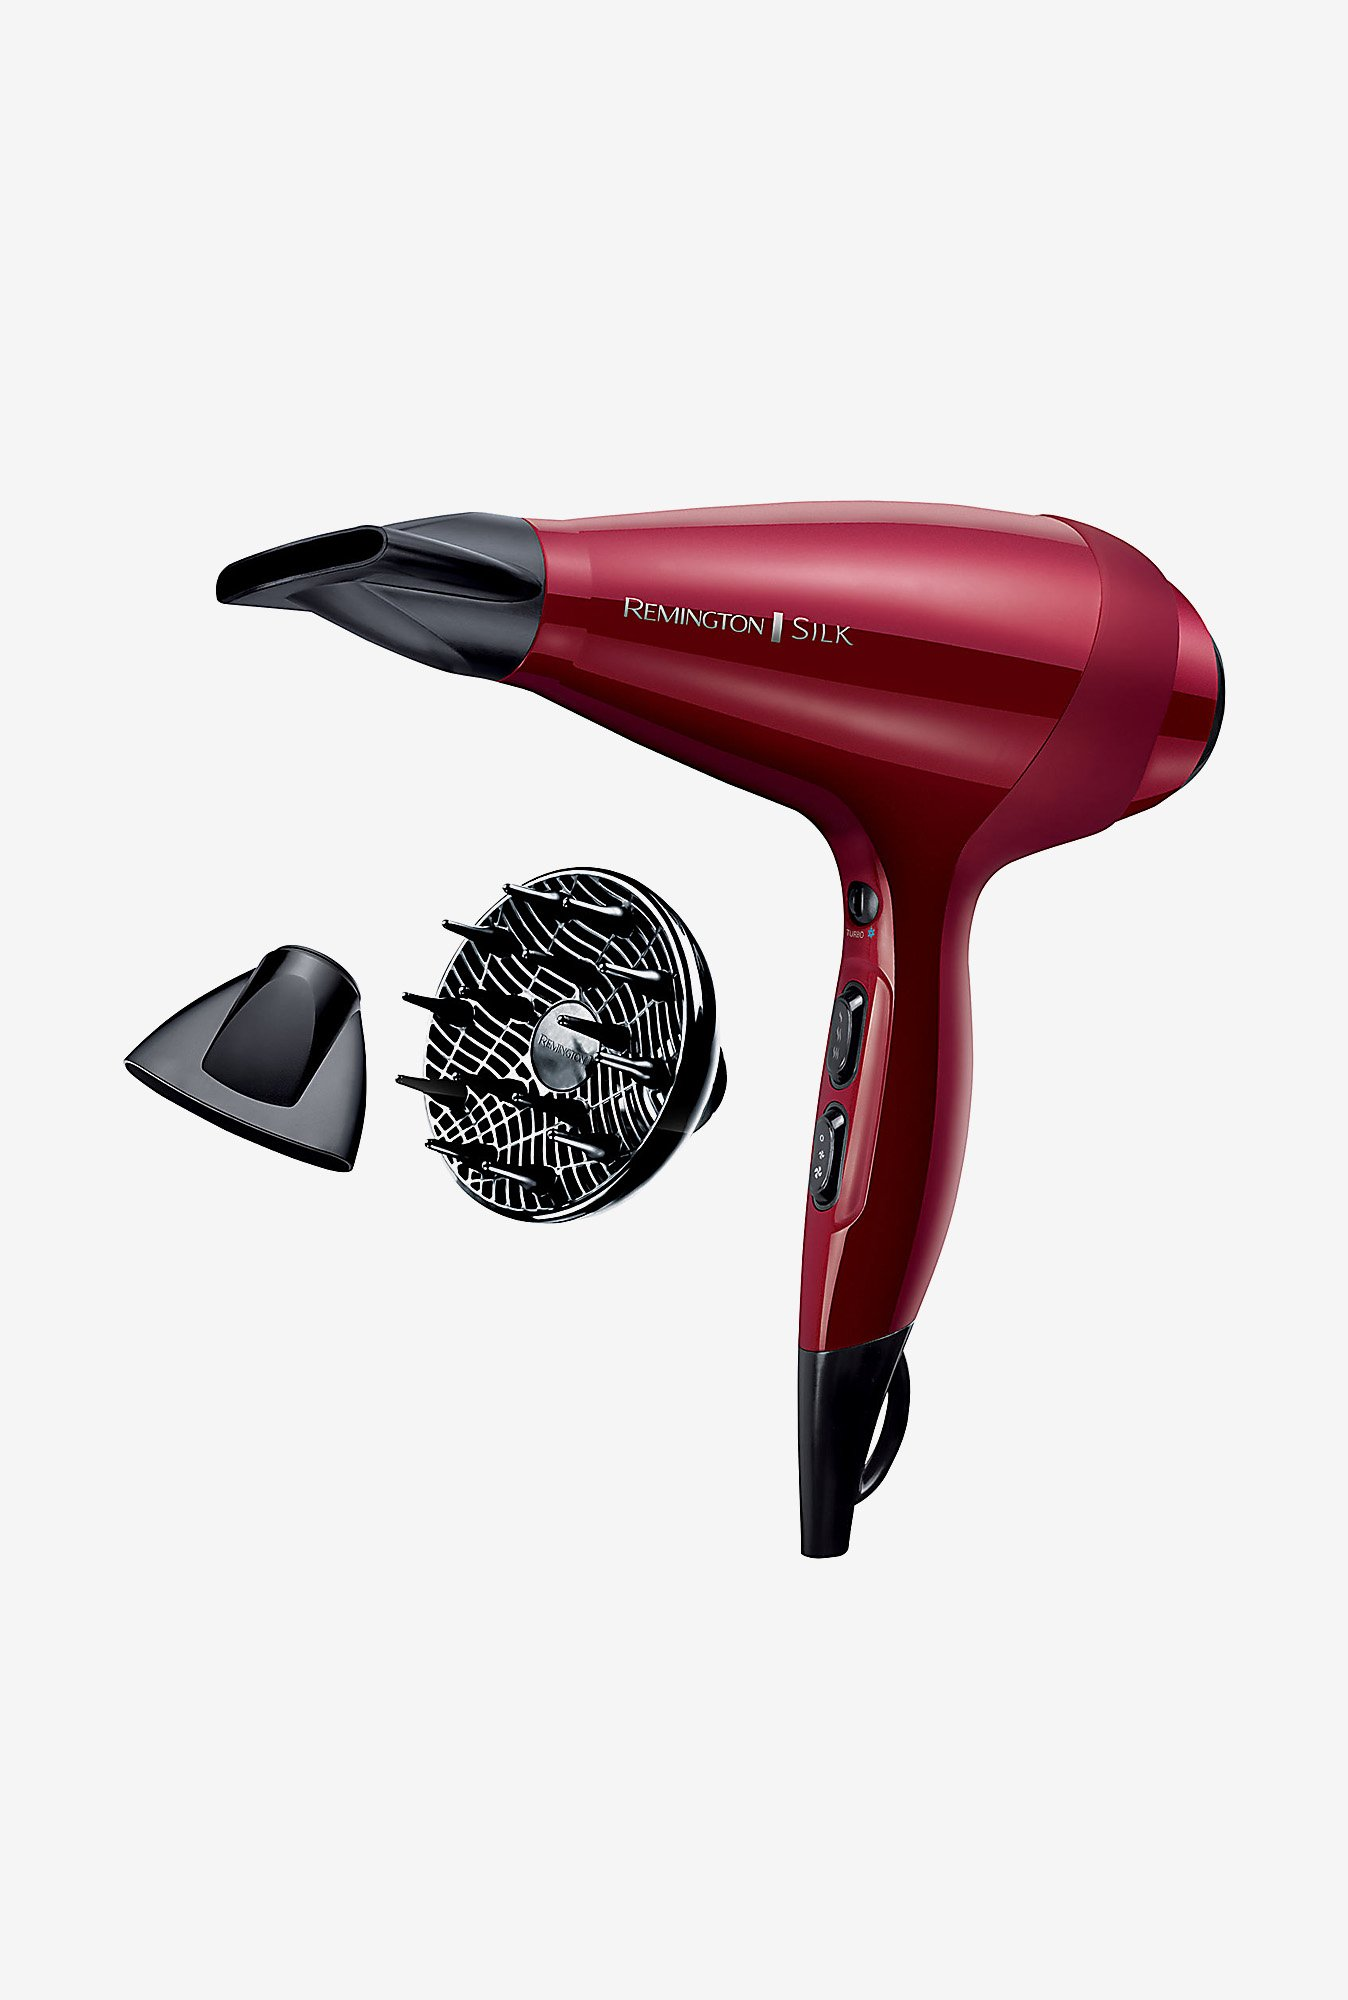 Remington Silk AC9096 1875 Watt Hair Dryer (Red)